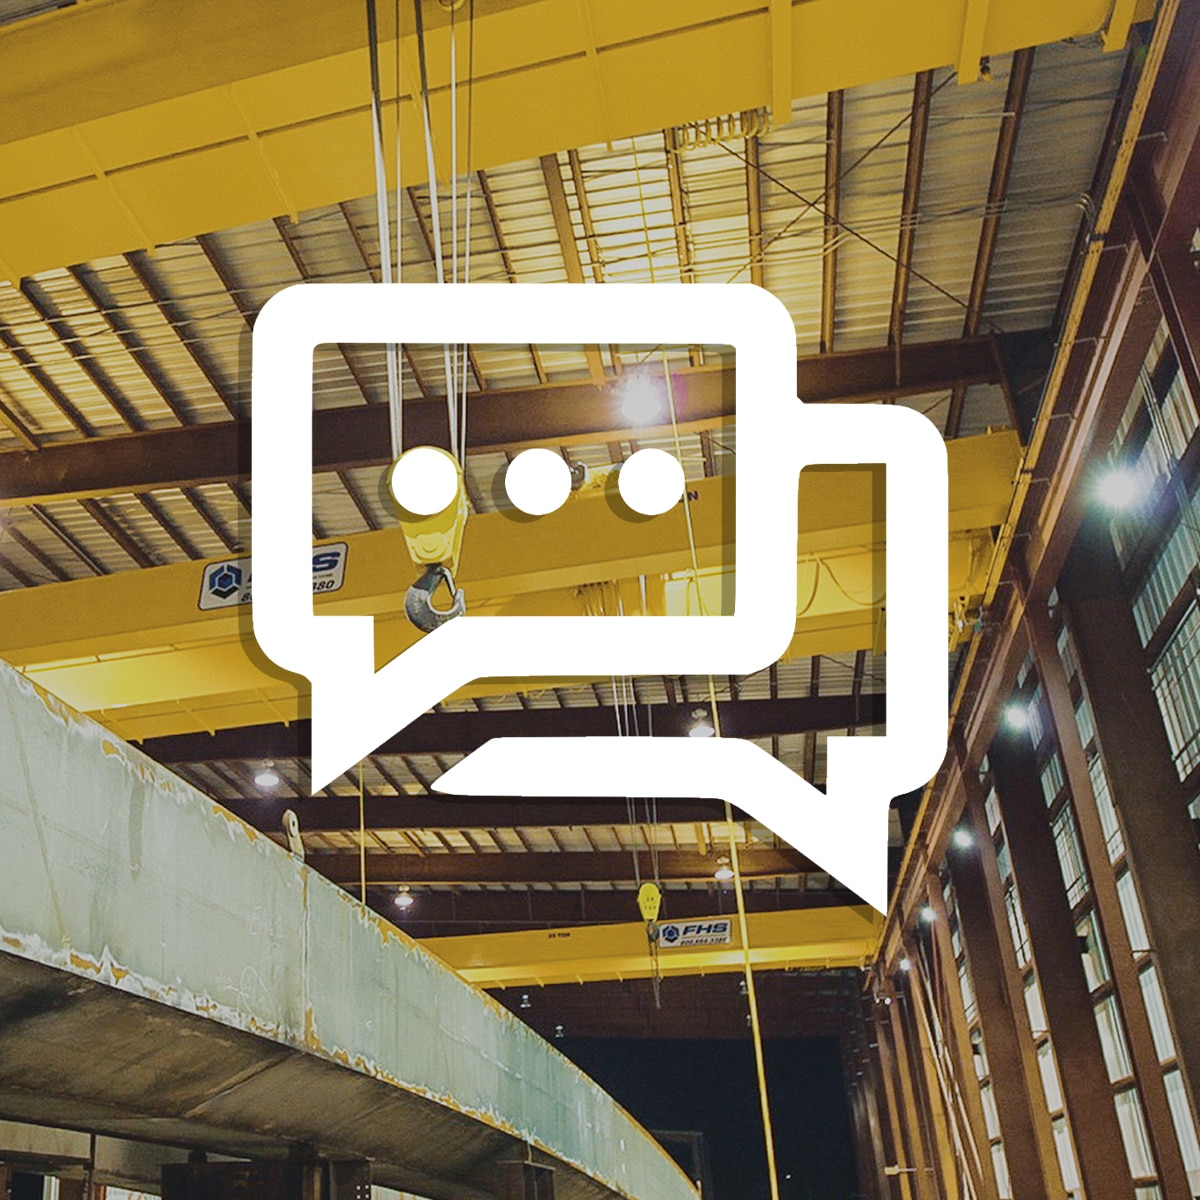 Contact Overhead Cranes Division 2